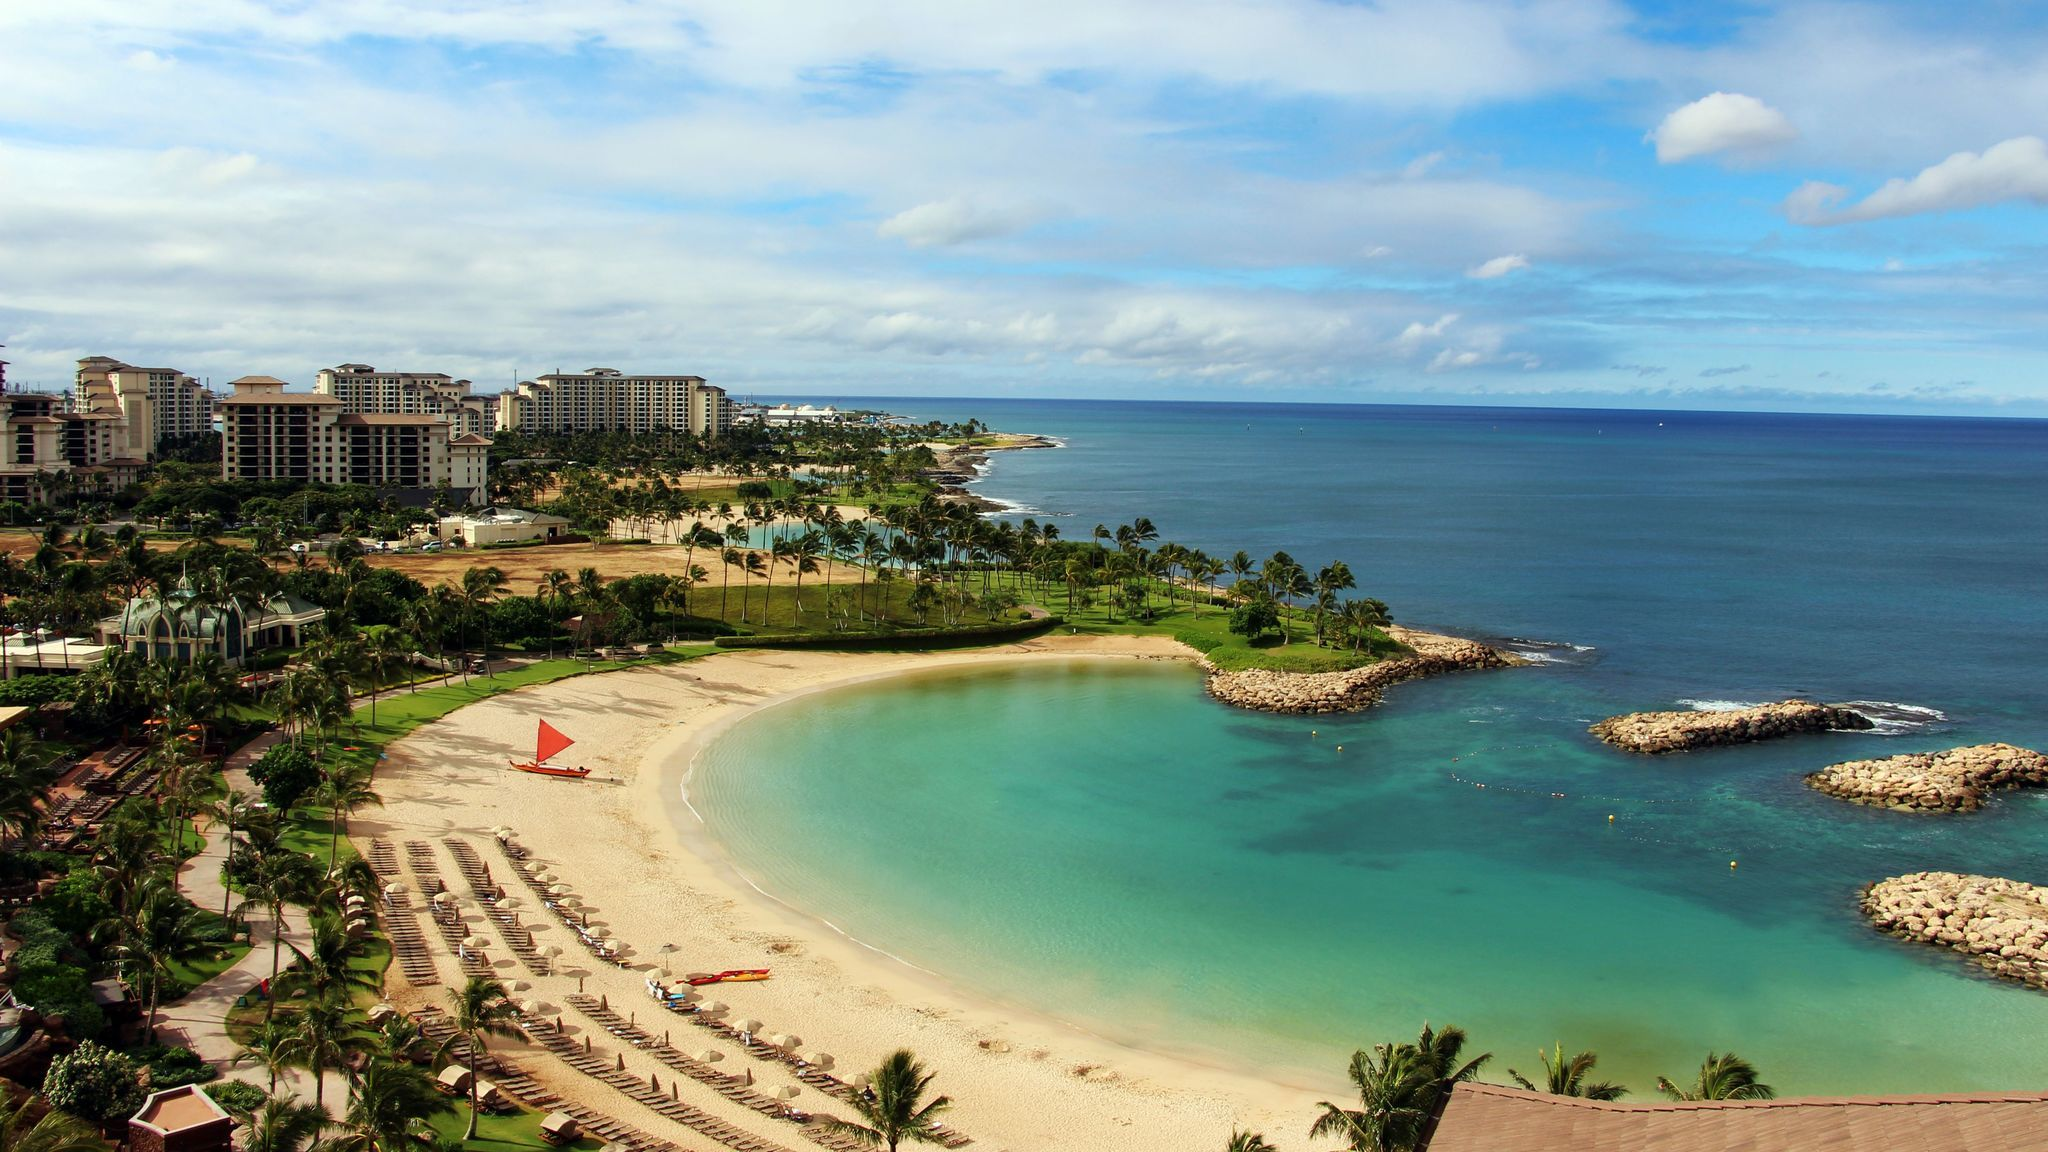 View of Ko Olina beach and the Kohola lagoon from the hotel room, Oahu, Hawaii.